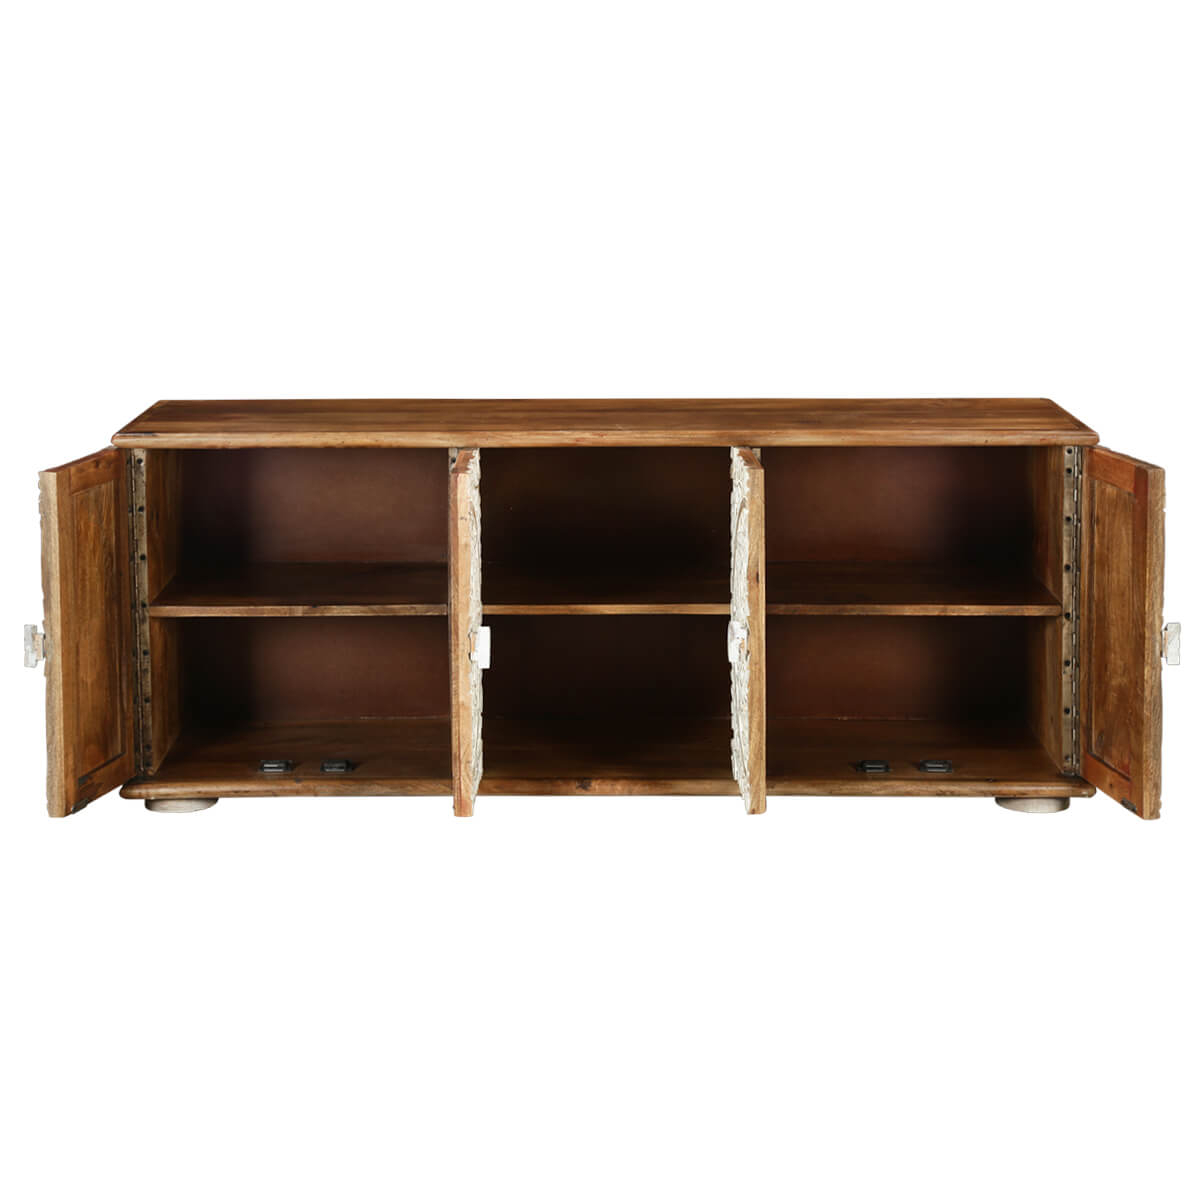 "Valencia 59"" Hand Carved Solid Wood Tv Stand Media Console pertaining to Valencia 70 Inch Tv Stands (Image 25 of 30)"